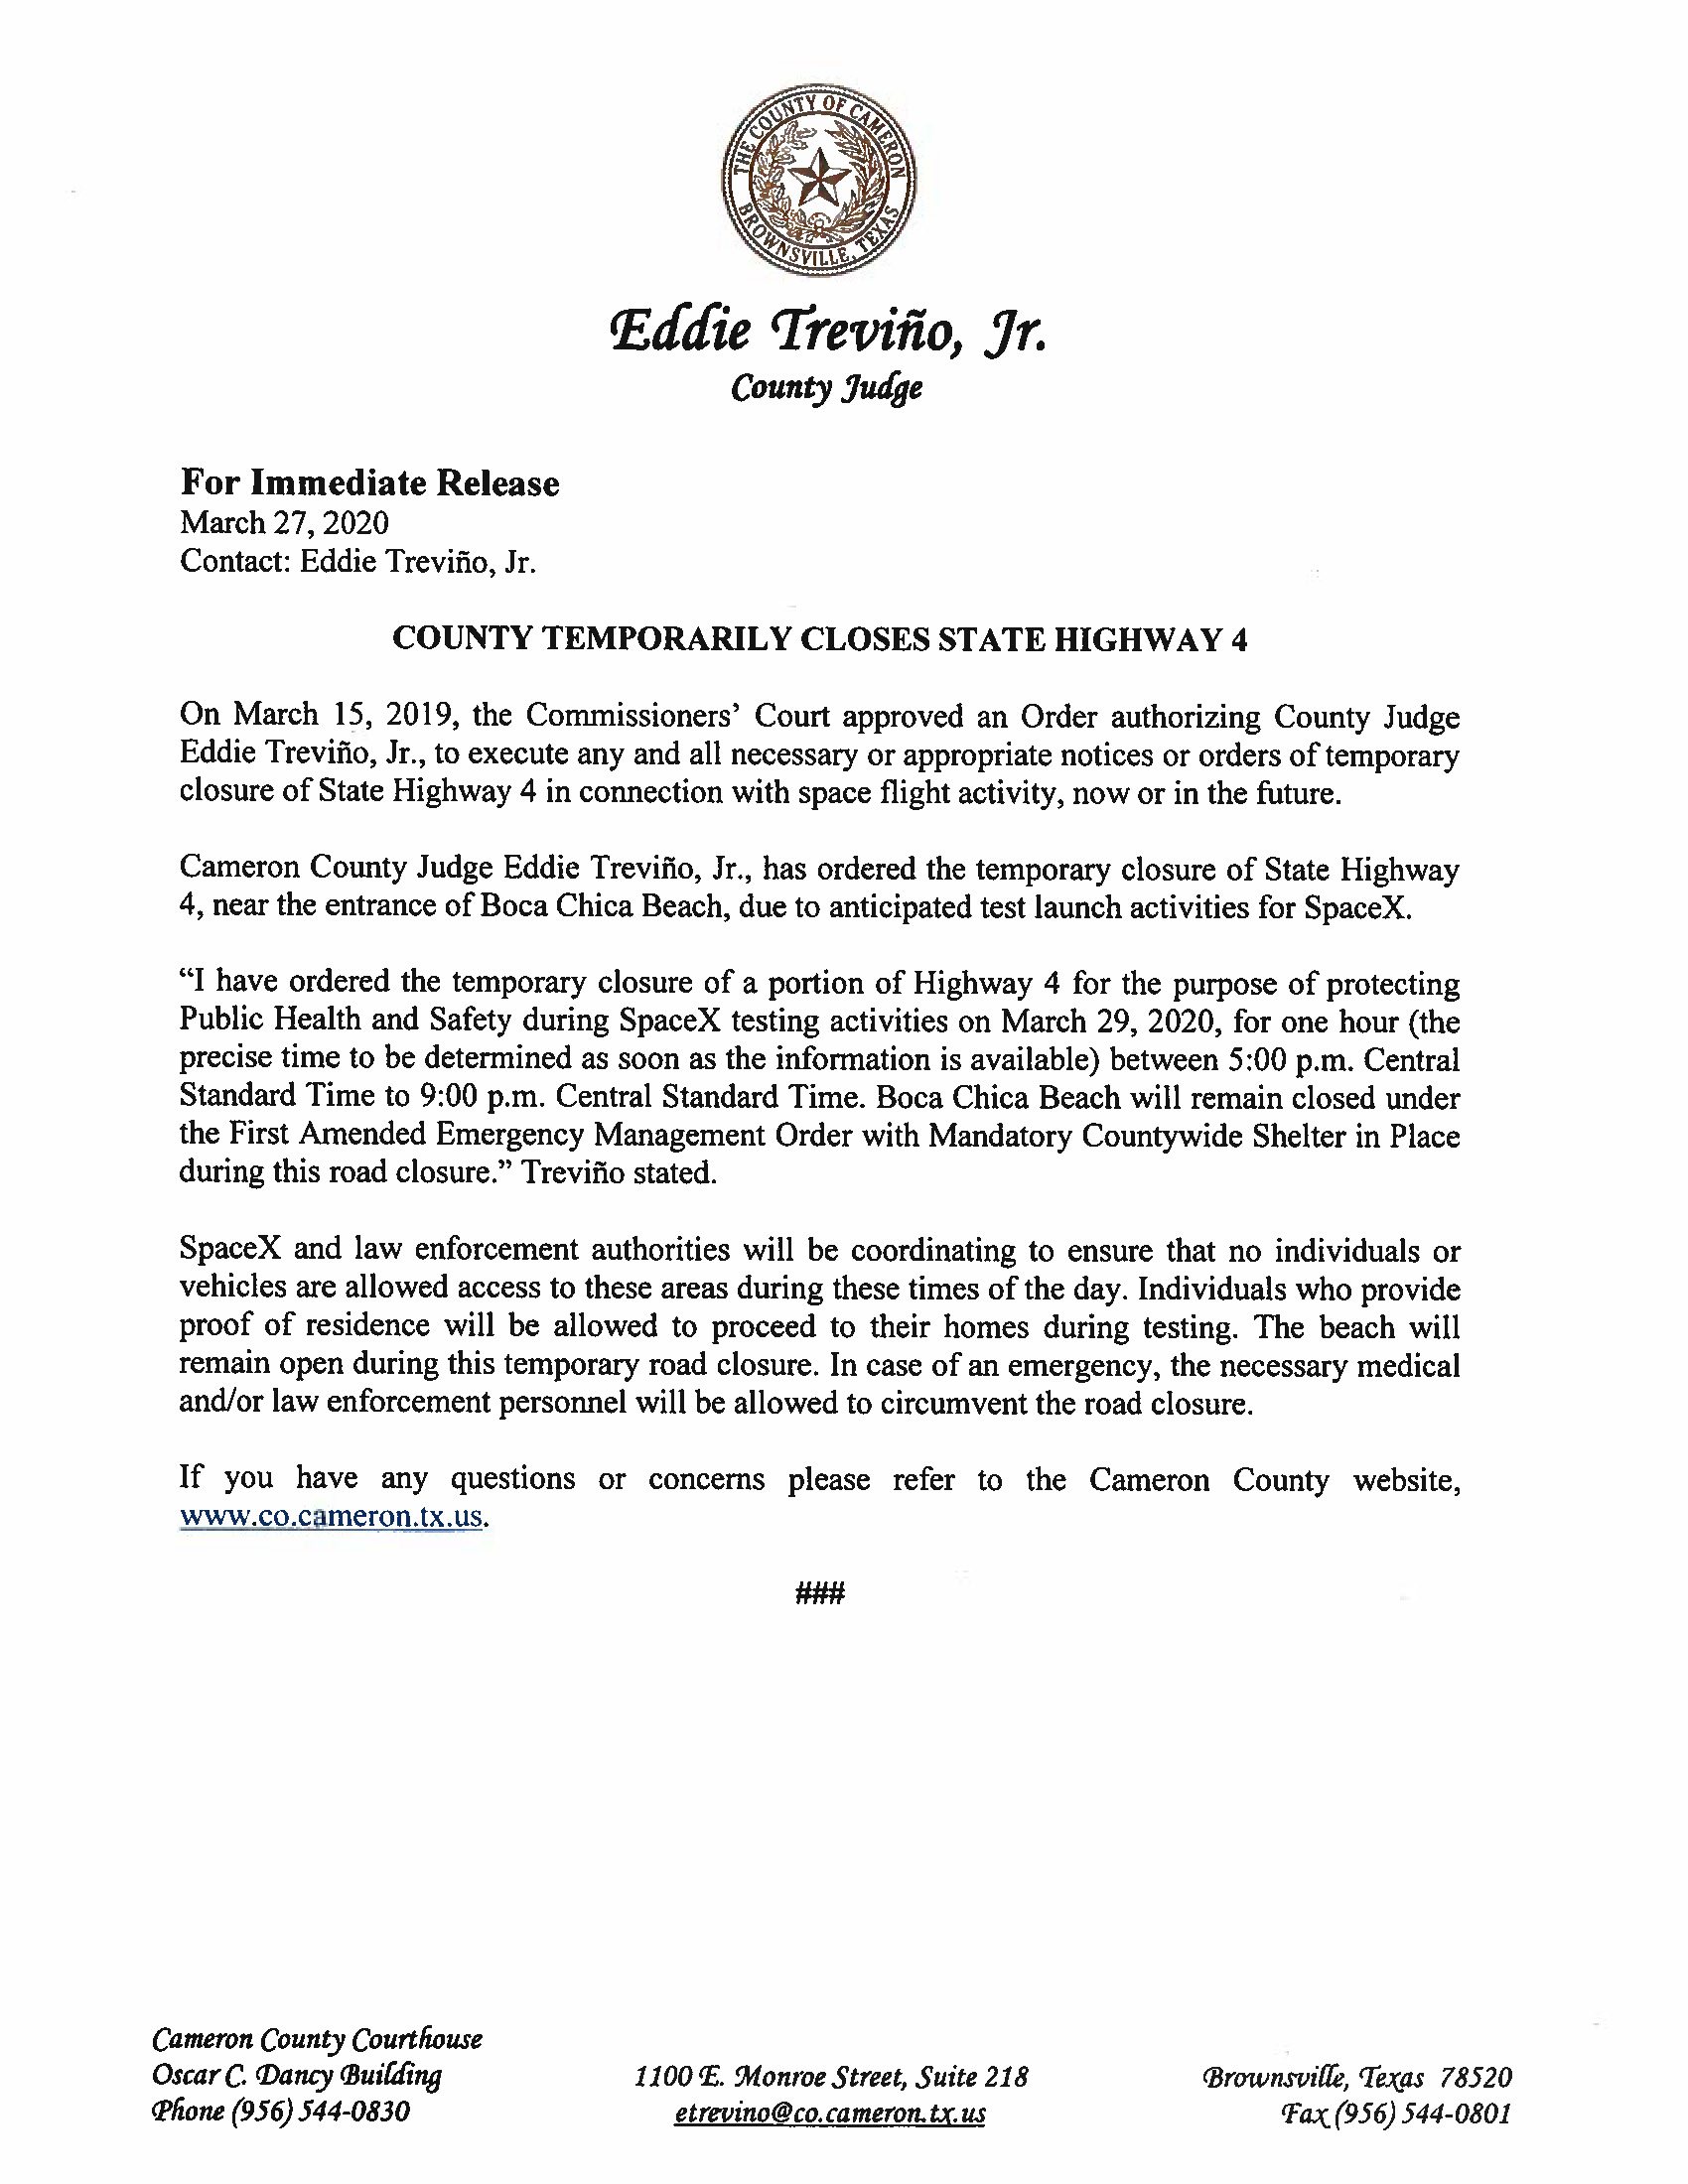 Press Release English Spanish For 03.29.2020.State Hwy 4 Closure Only Page 1